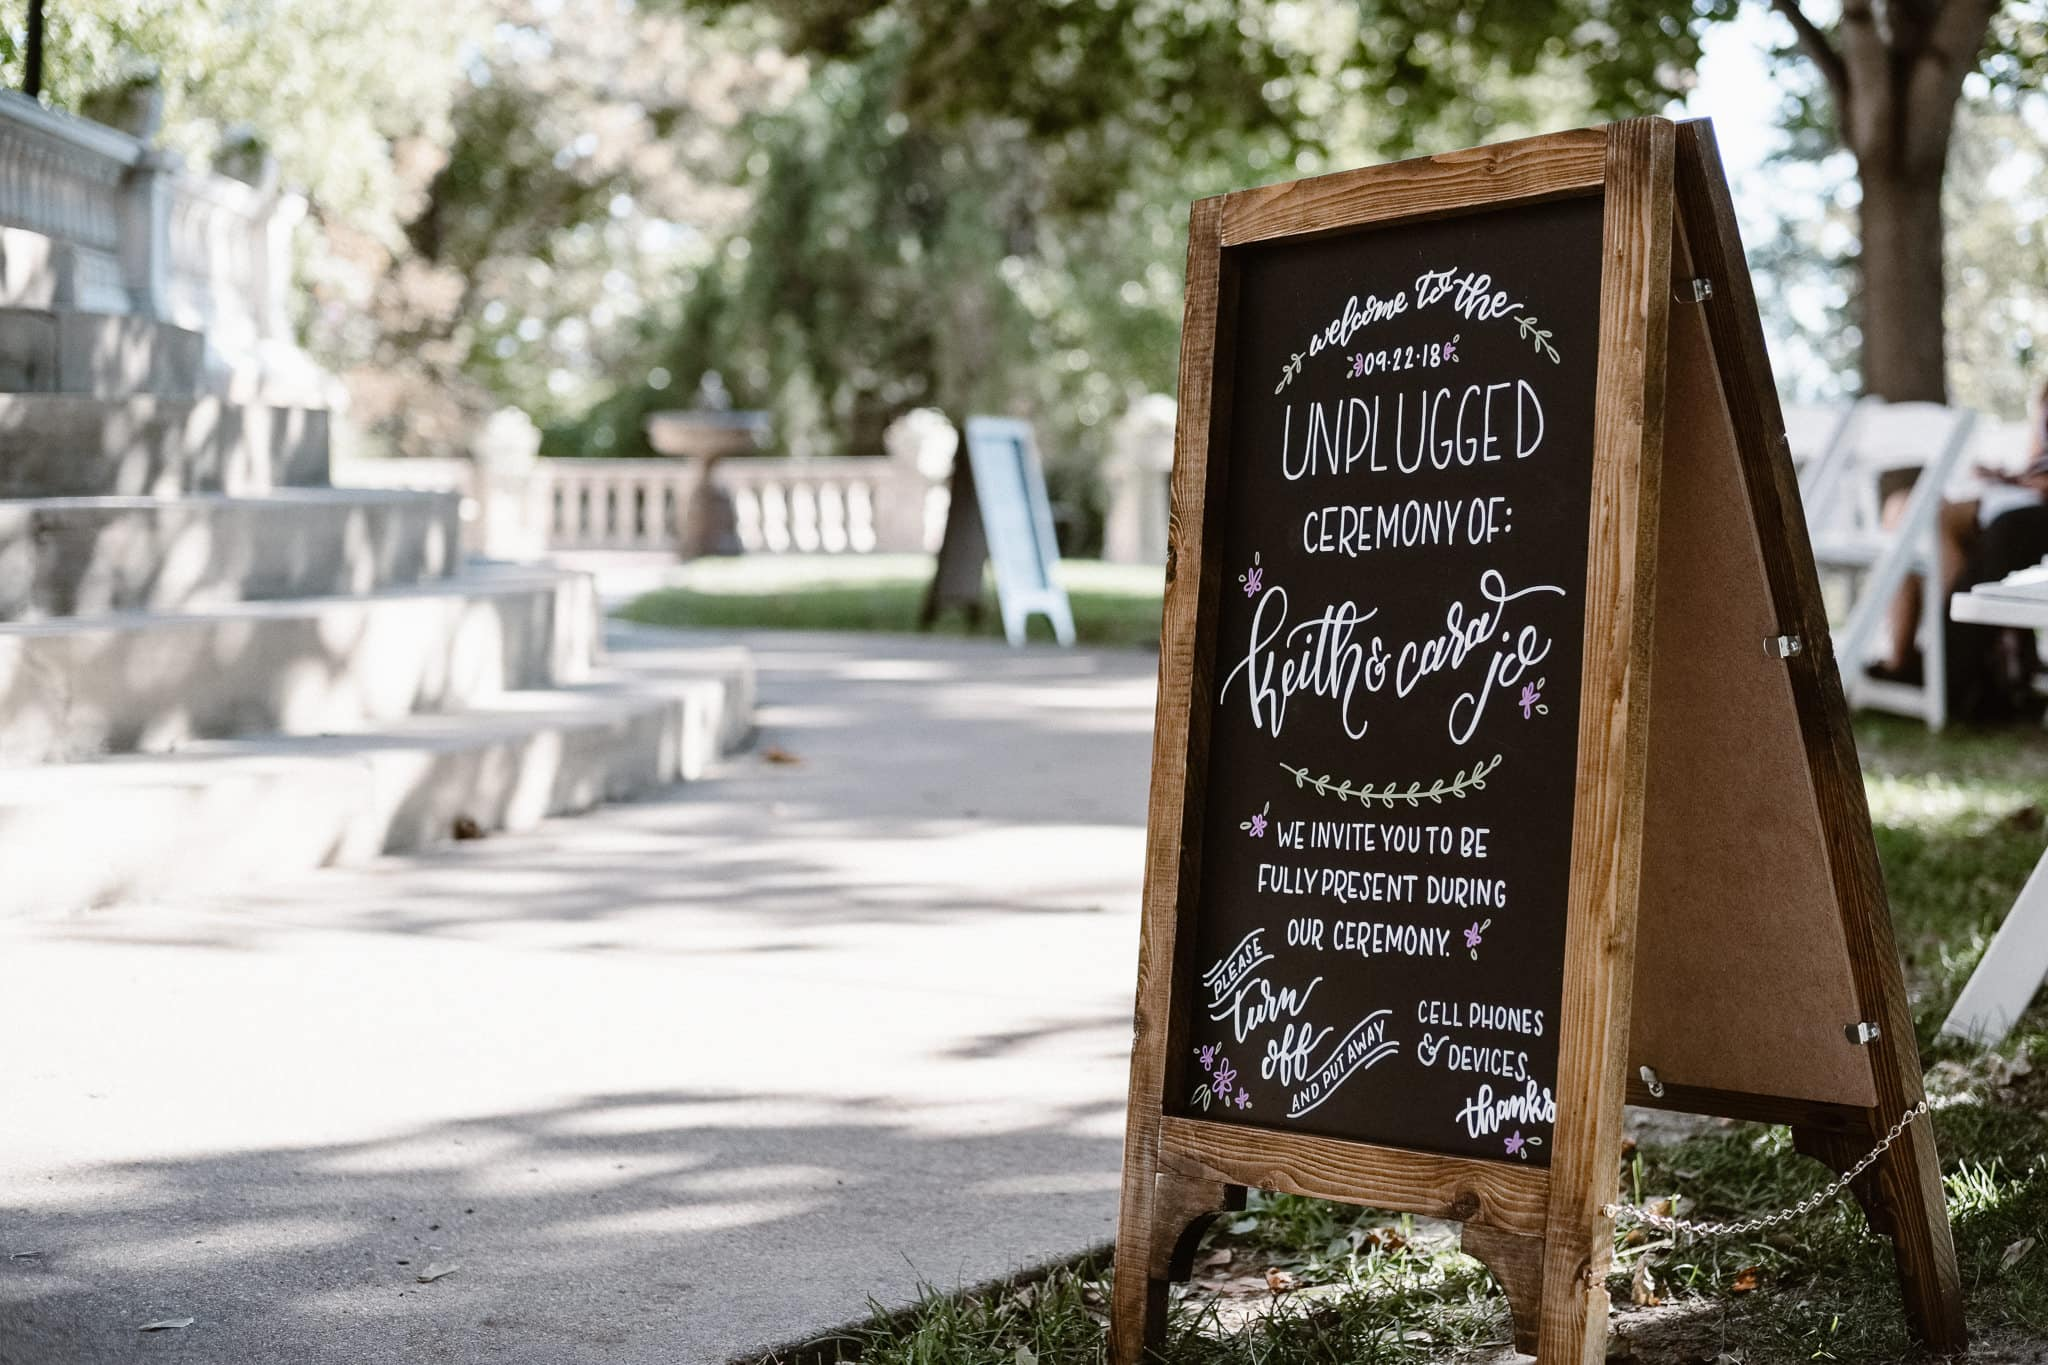 Grant Humphreys Mansion Wedding Photographer, Denver wedding photographer, Colorado wedding photographer, unplugged wedding ceremony chalkboard sign